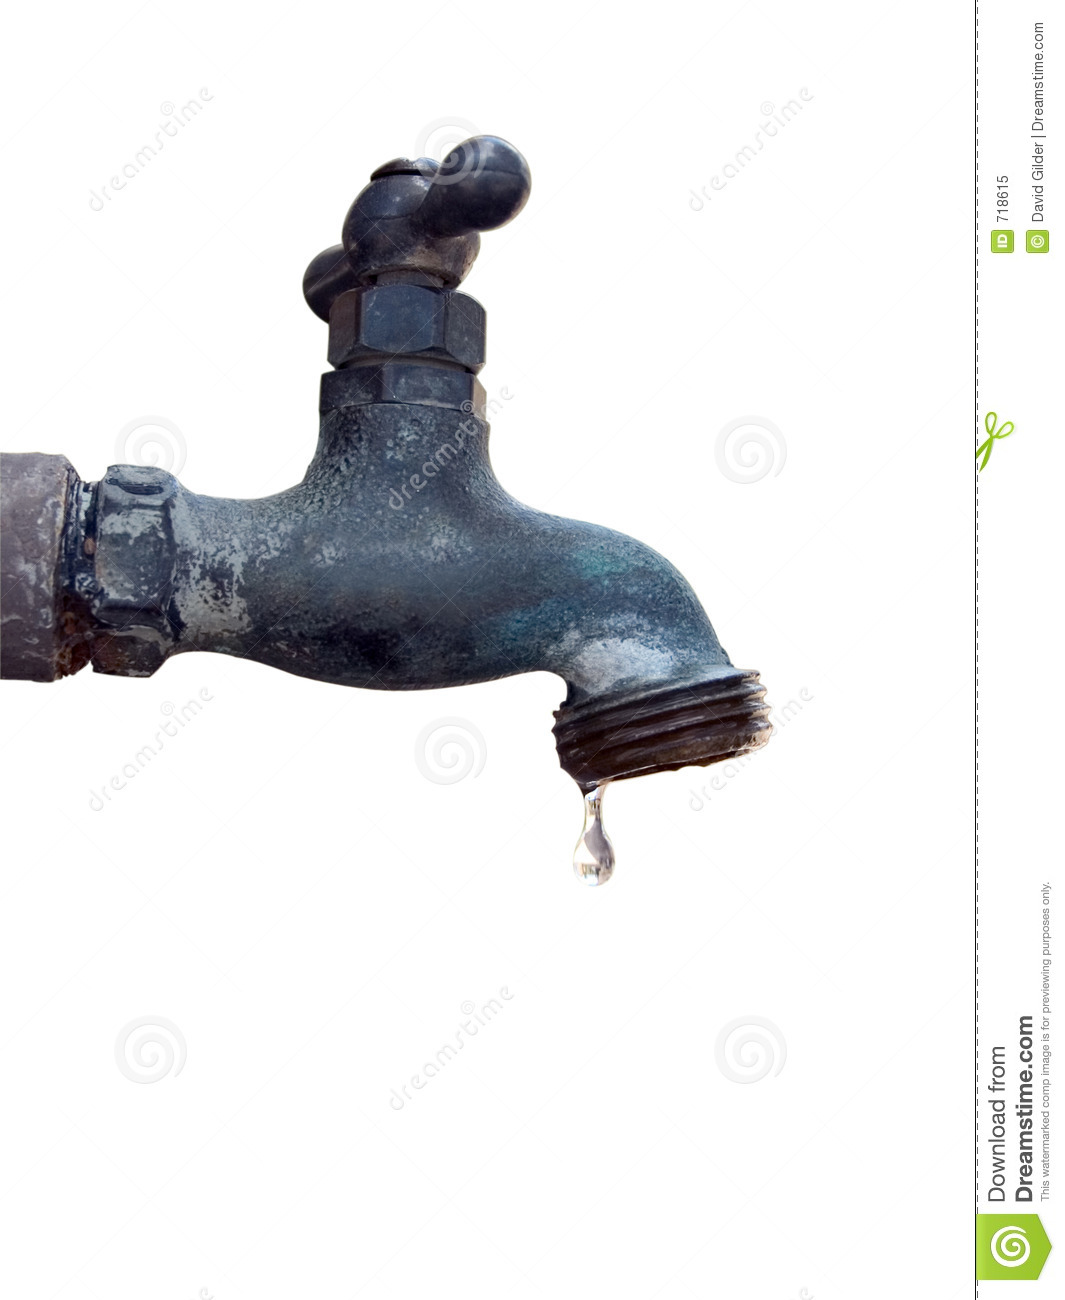 Dripping water faucet stock image. Image of isolation, gardens - 718615